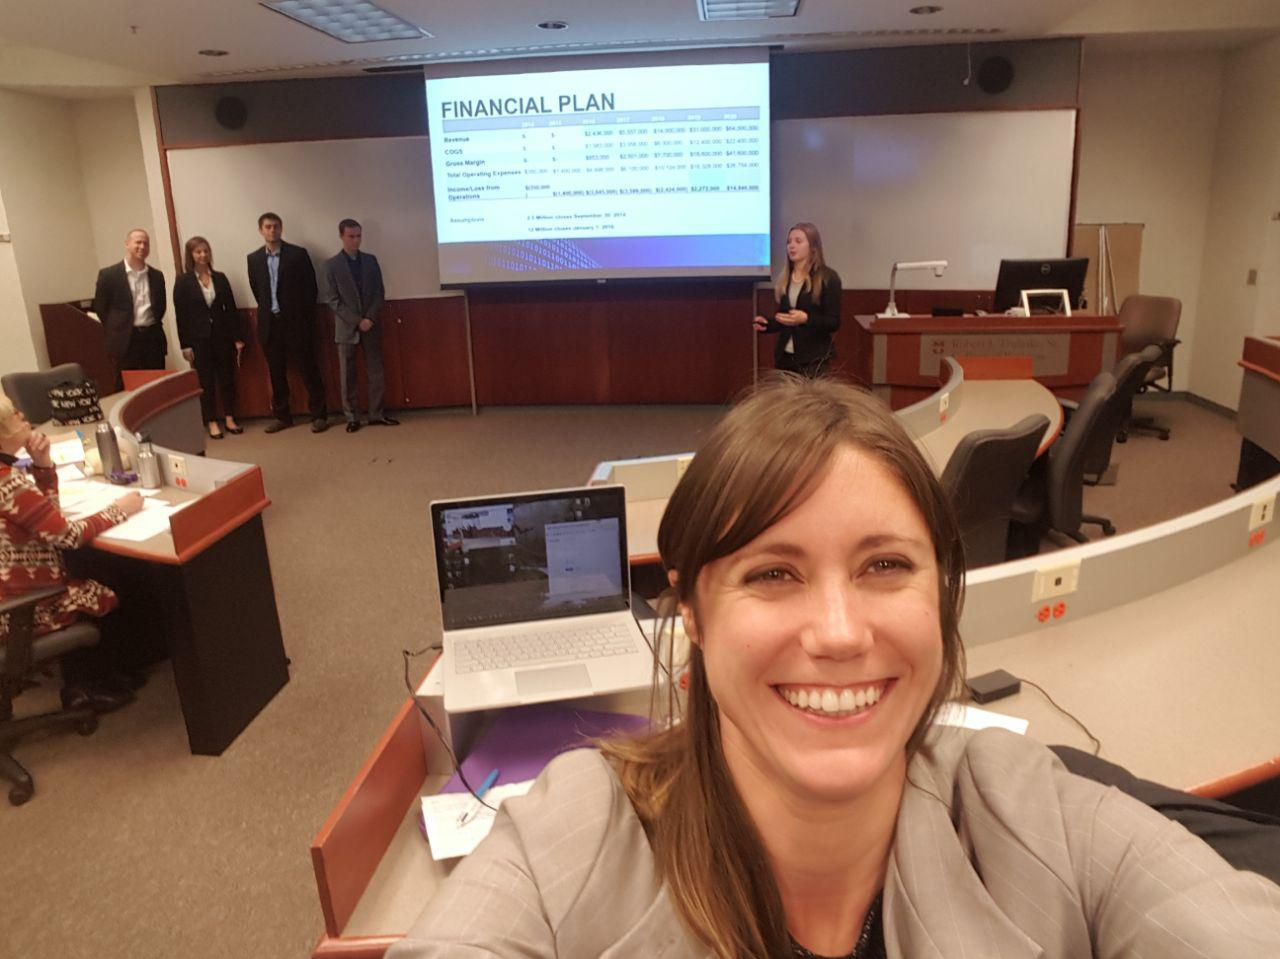 This is a picture of Maria Magner in a conference room before a College of Business Event